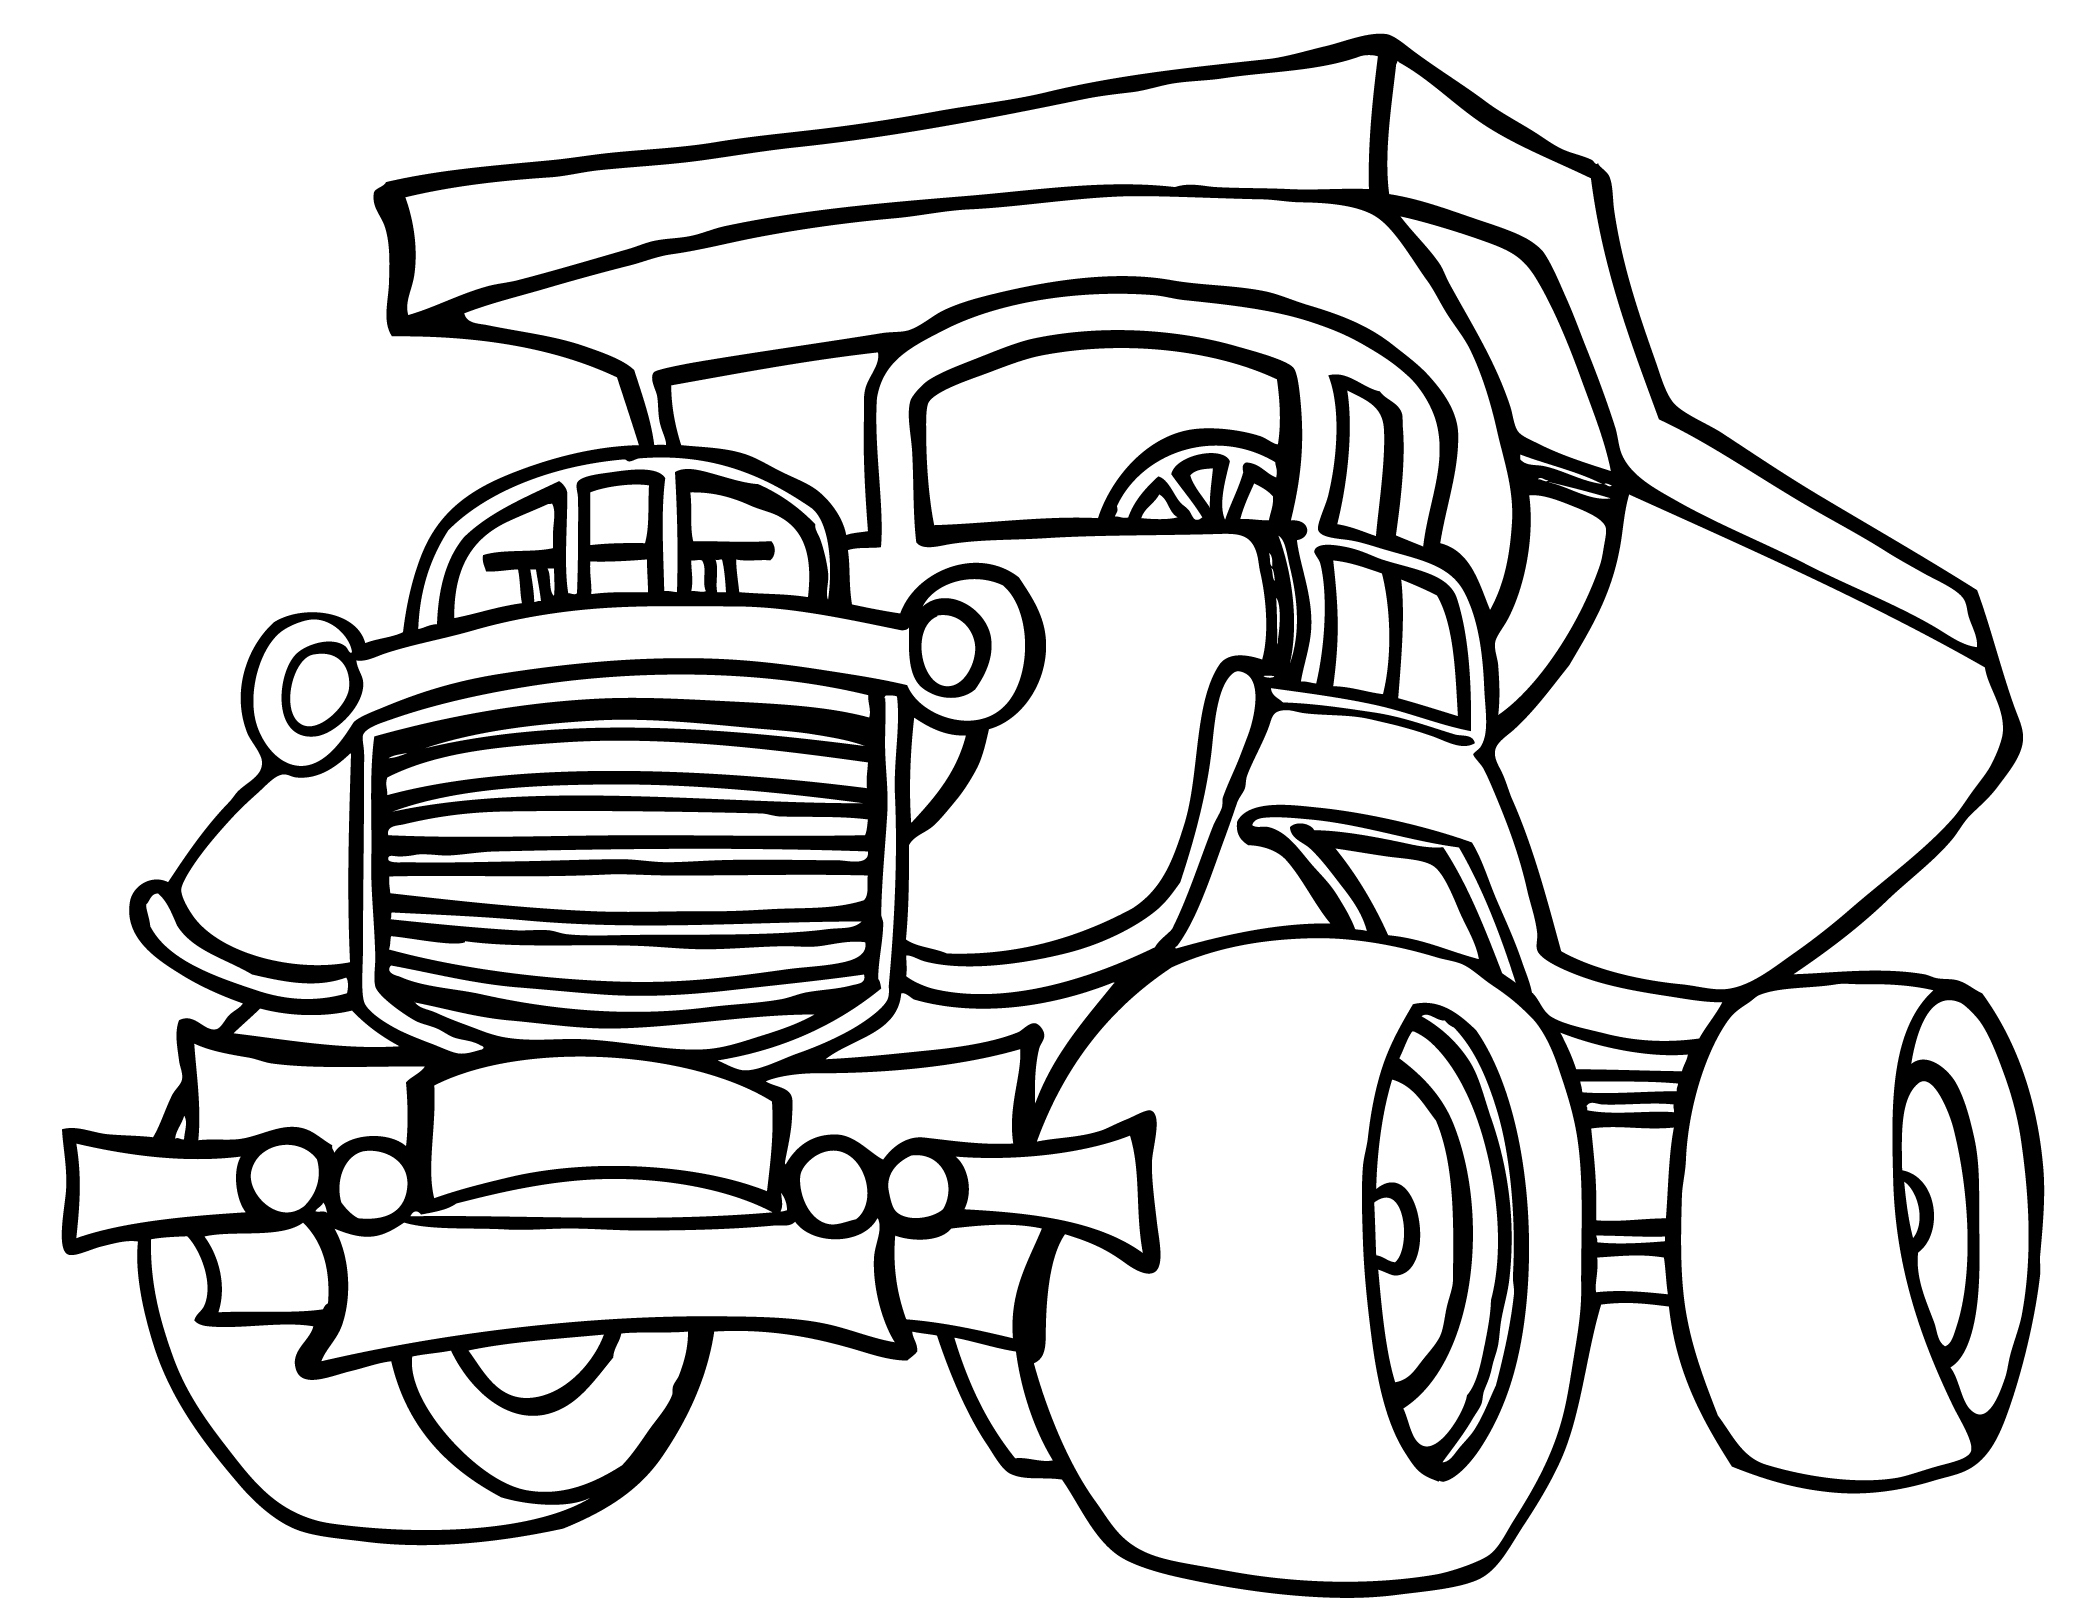 truck coloring pages to print dump truck coloring pages to download and print for free pages truck to coloring print